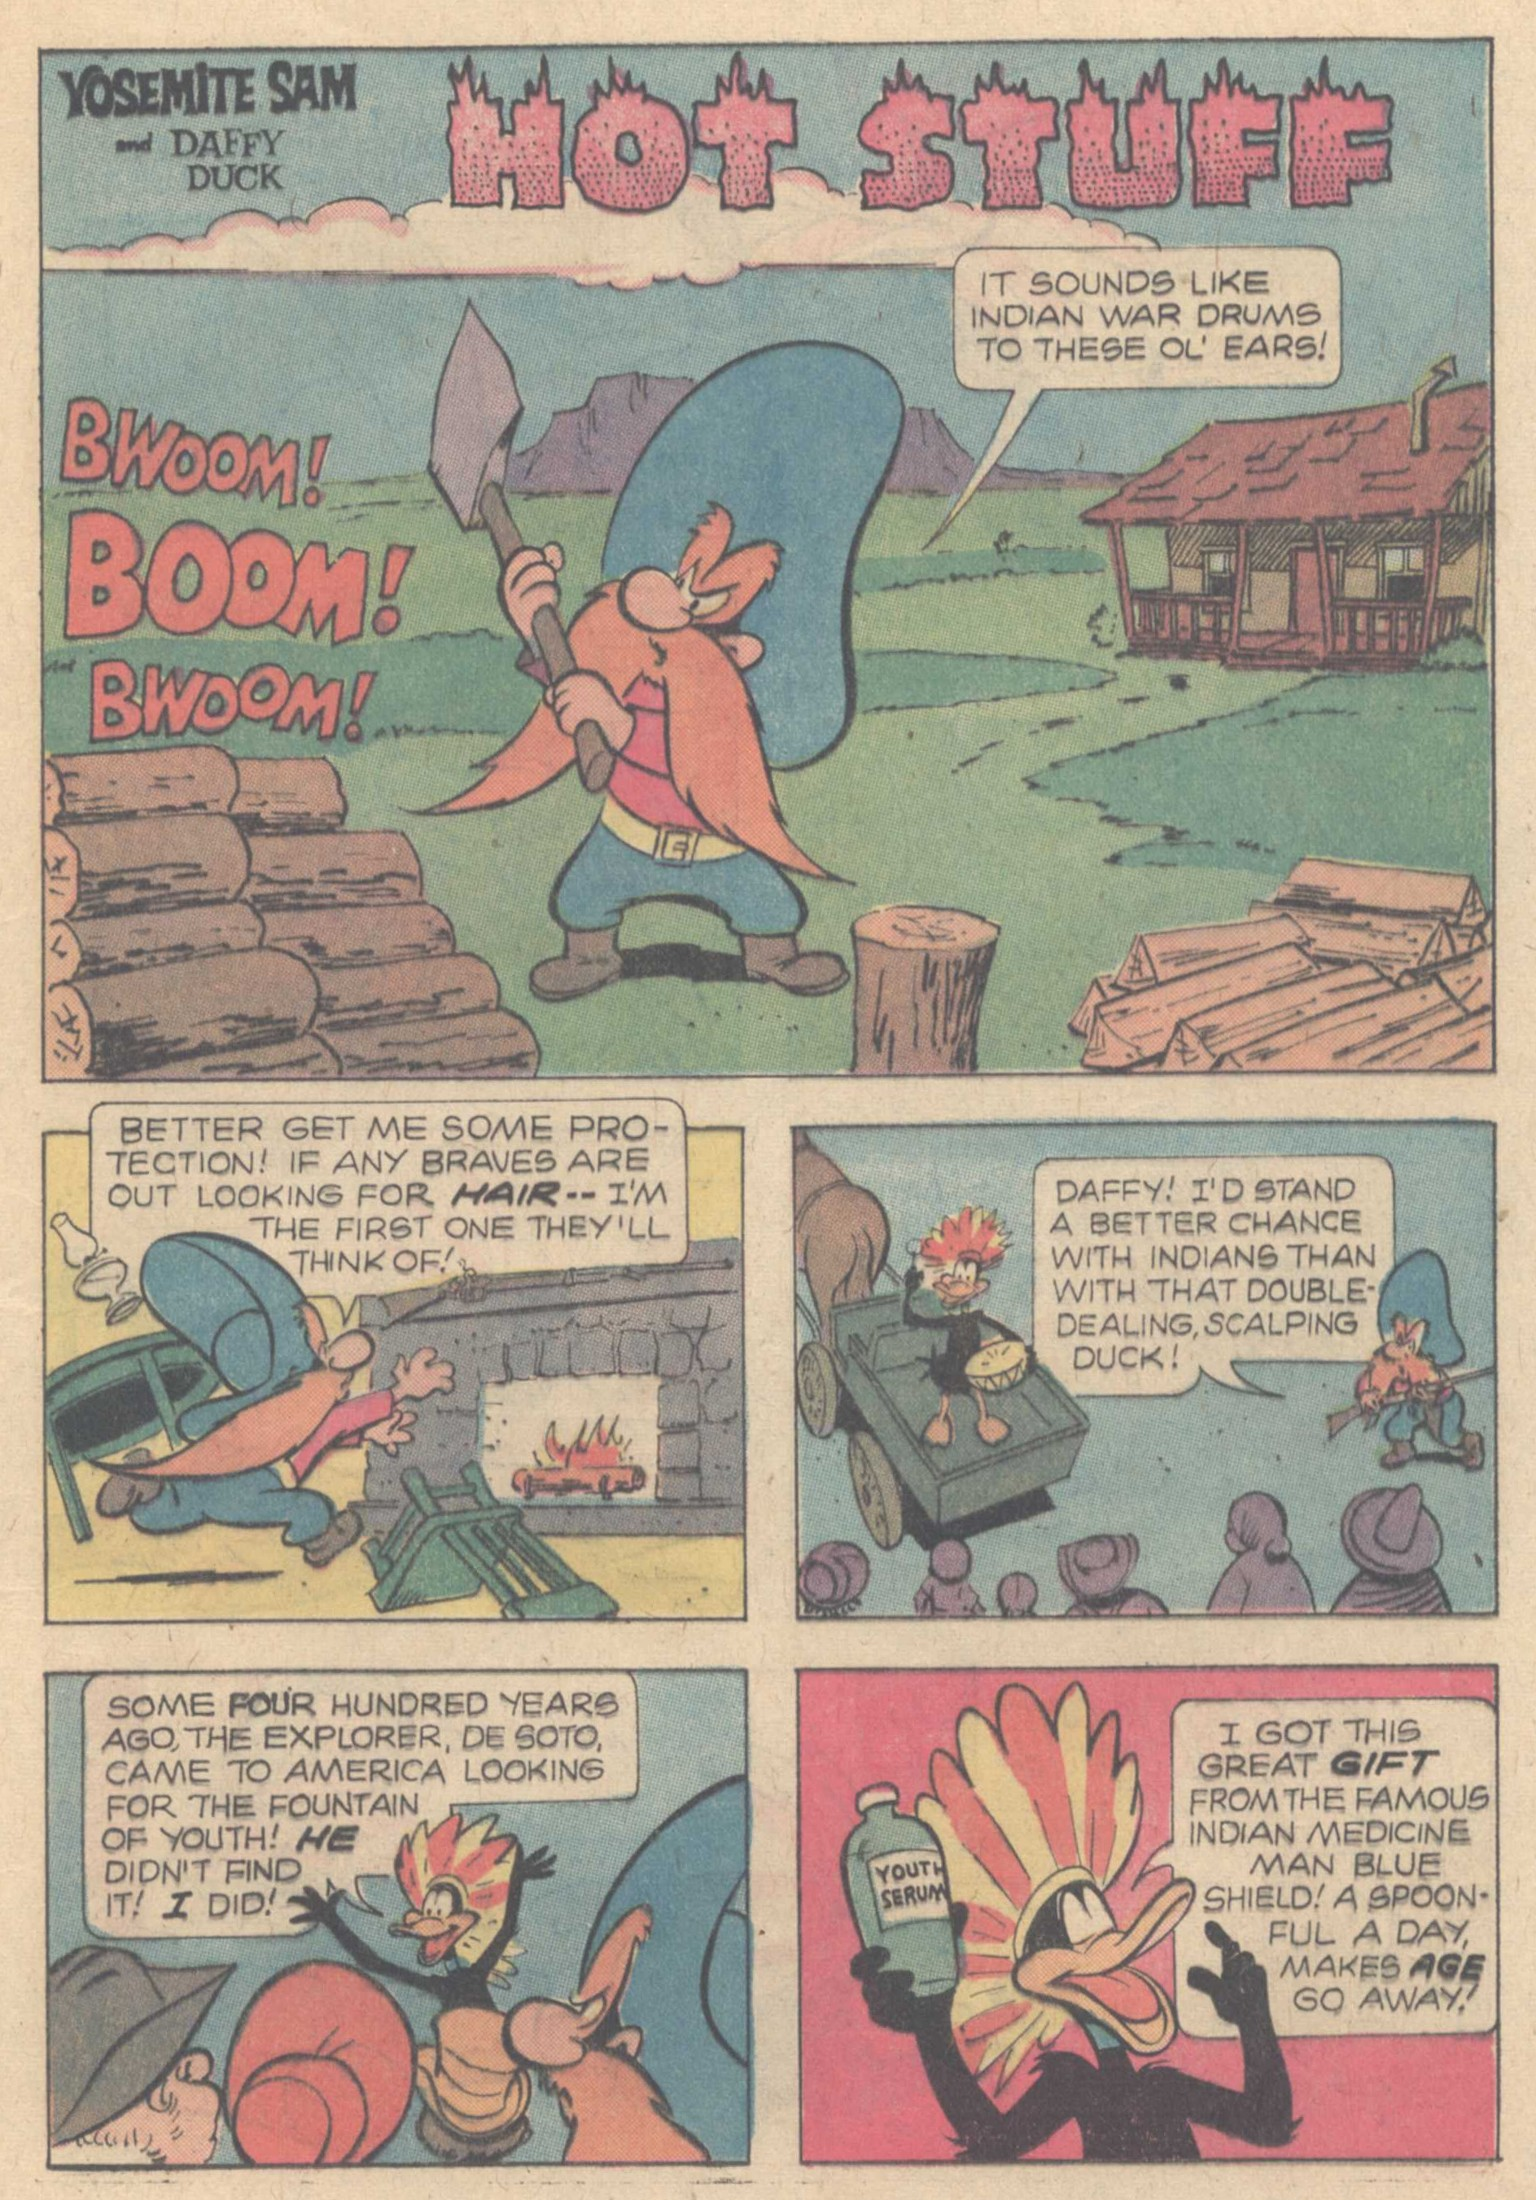 Yosemite Sam and Bugs Bunny Issue 29 | Viewcomic reading